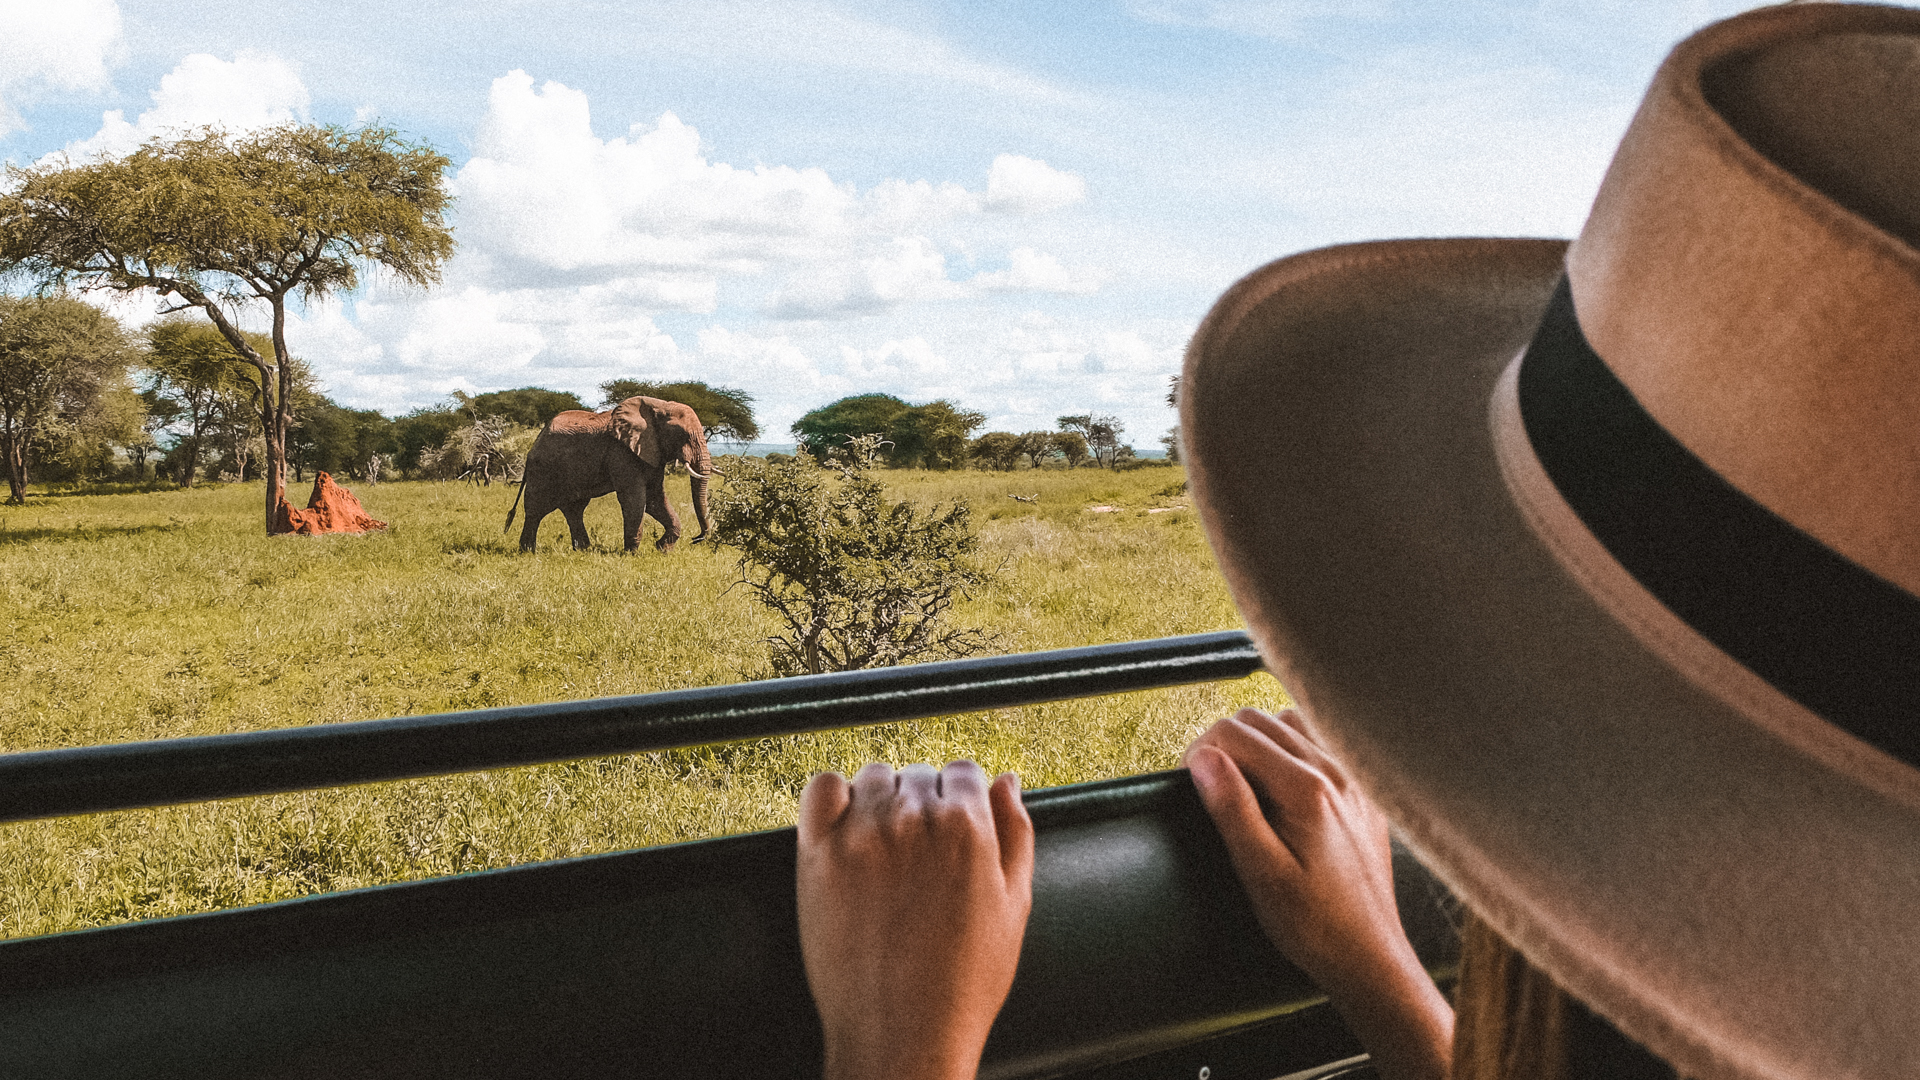 Watching an old elephant passing by from the jeep in the Serengeti National Park, Tanzania